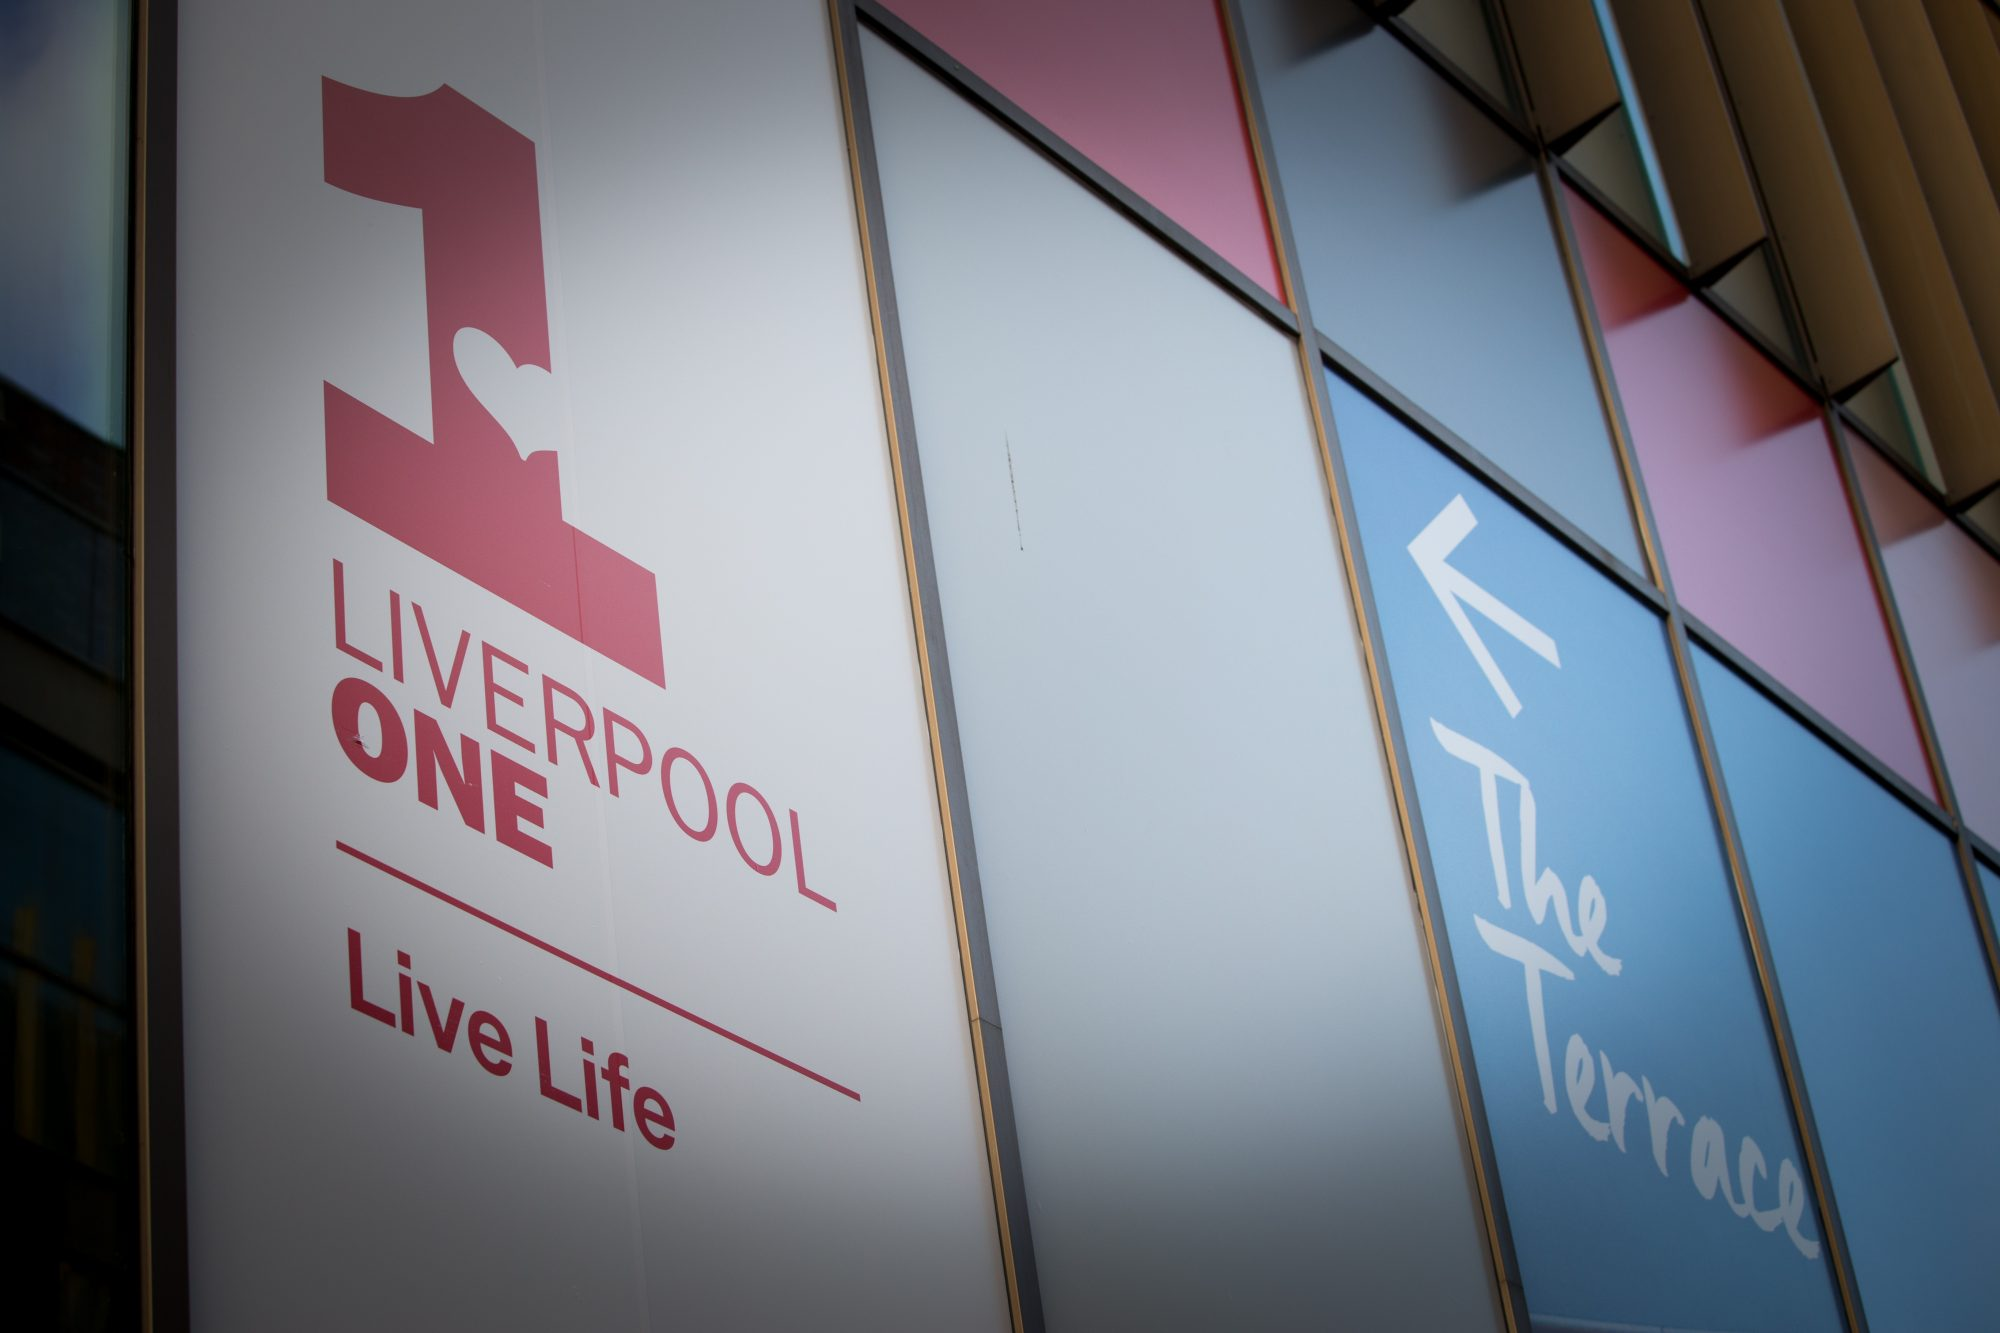 PR; Commercial photography; Liverpool One